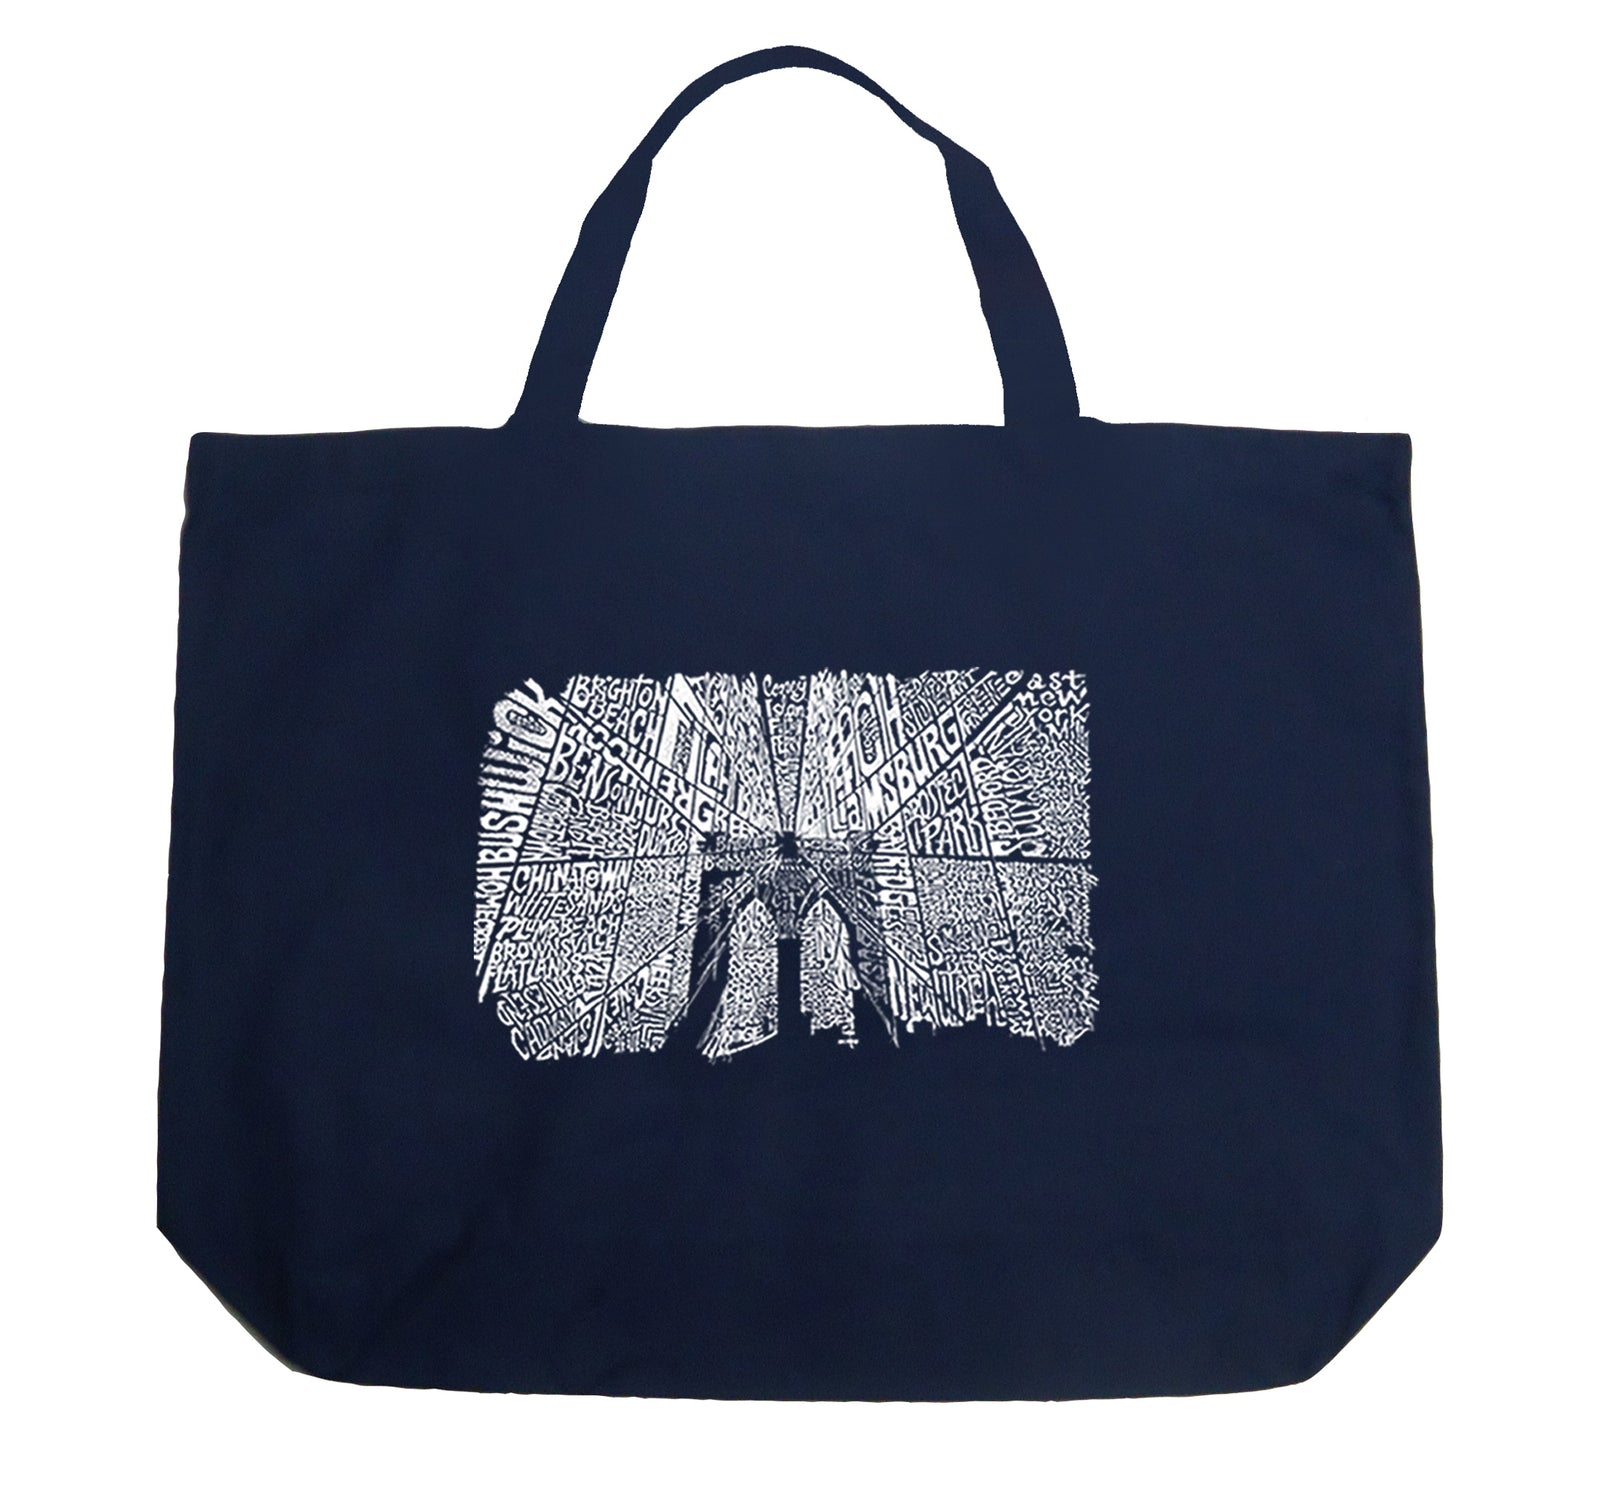 Large Tote Bag - Brooklyn Bridge